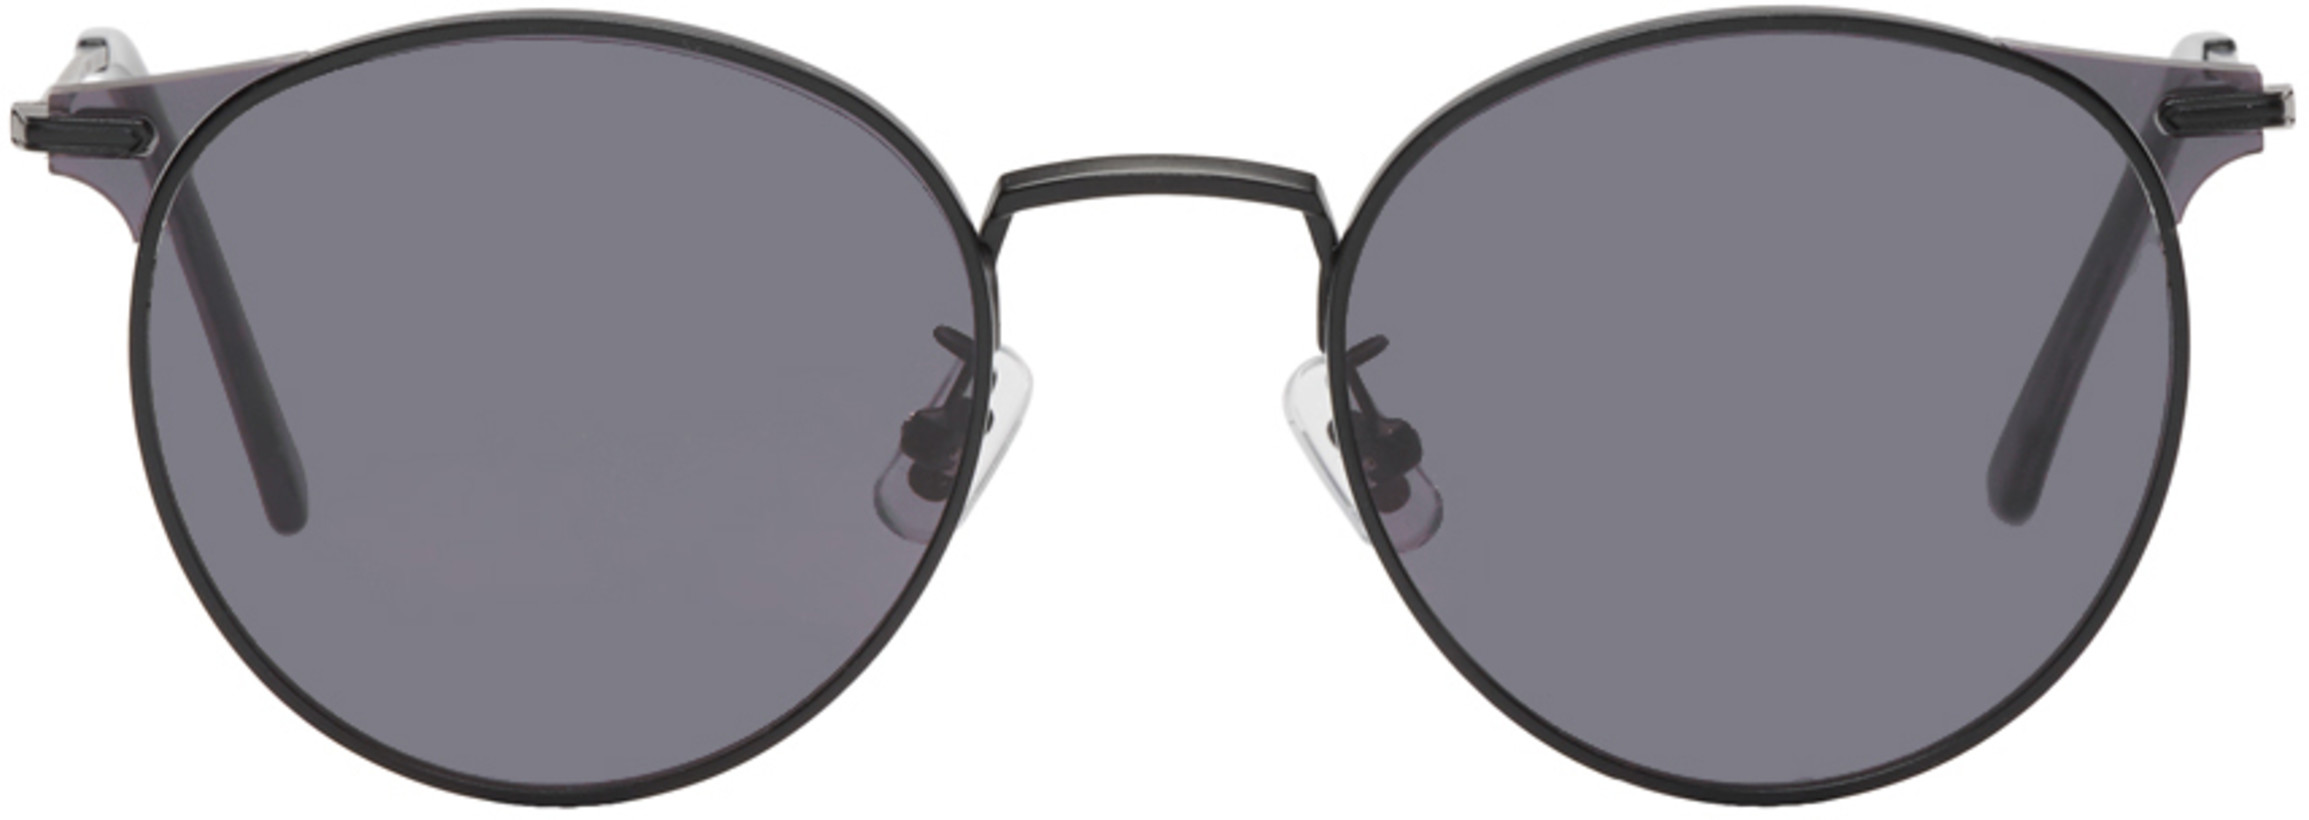 Gentle Monster Black Moor Sunglasses